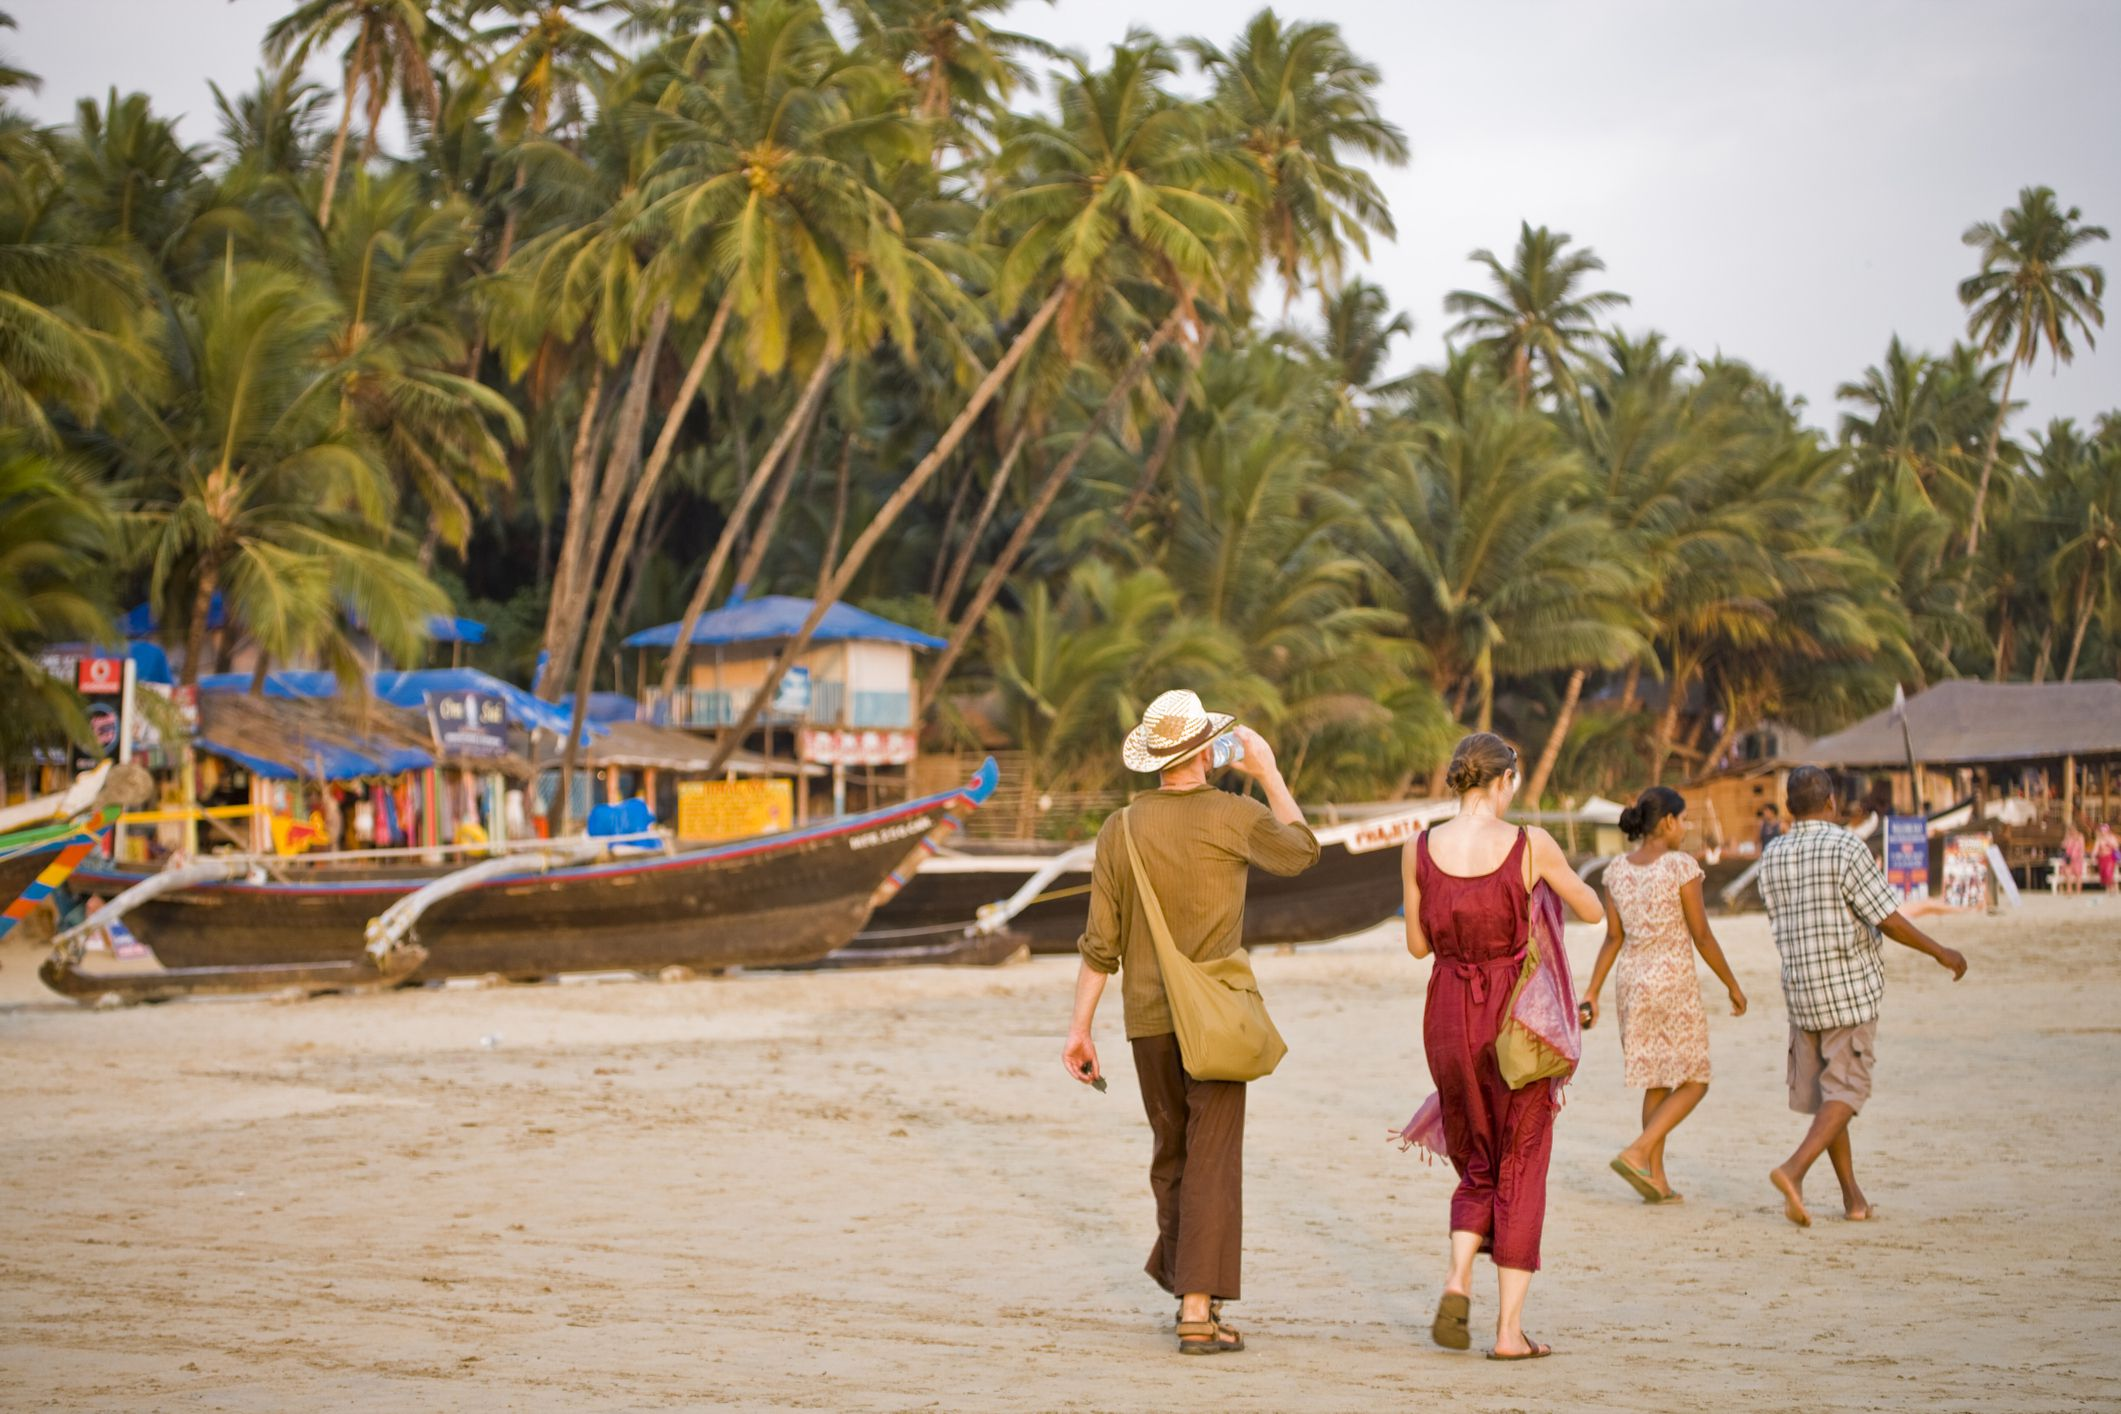 tourism in goa Tourism and goa essay tourism in goa the state of goa, india, is famous for its beaches and places of worship, and tourism is its primary industry tourism is generally focused on the coastal areas of goa, with decreased tourist activity inland.